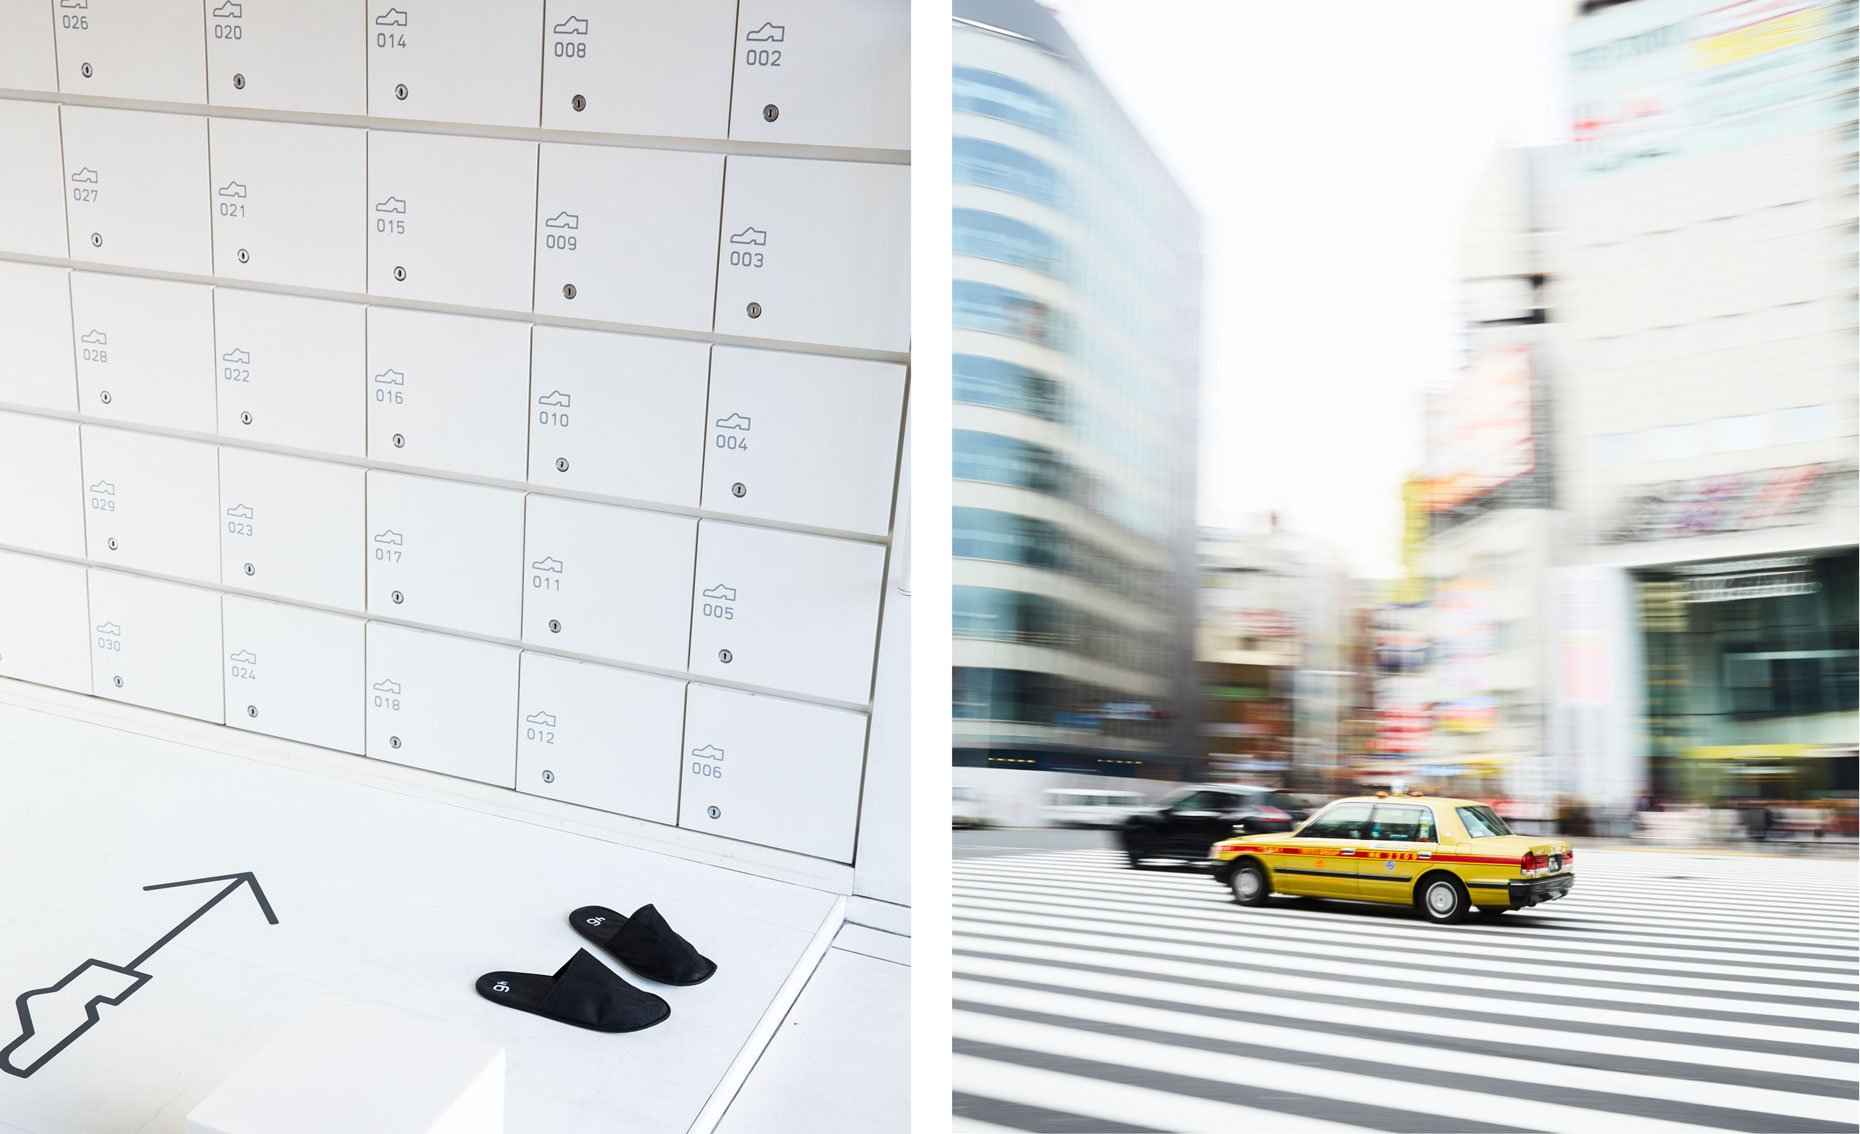 Japanese pedestrian crossing and taxi